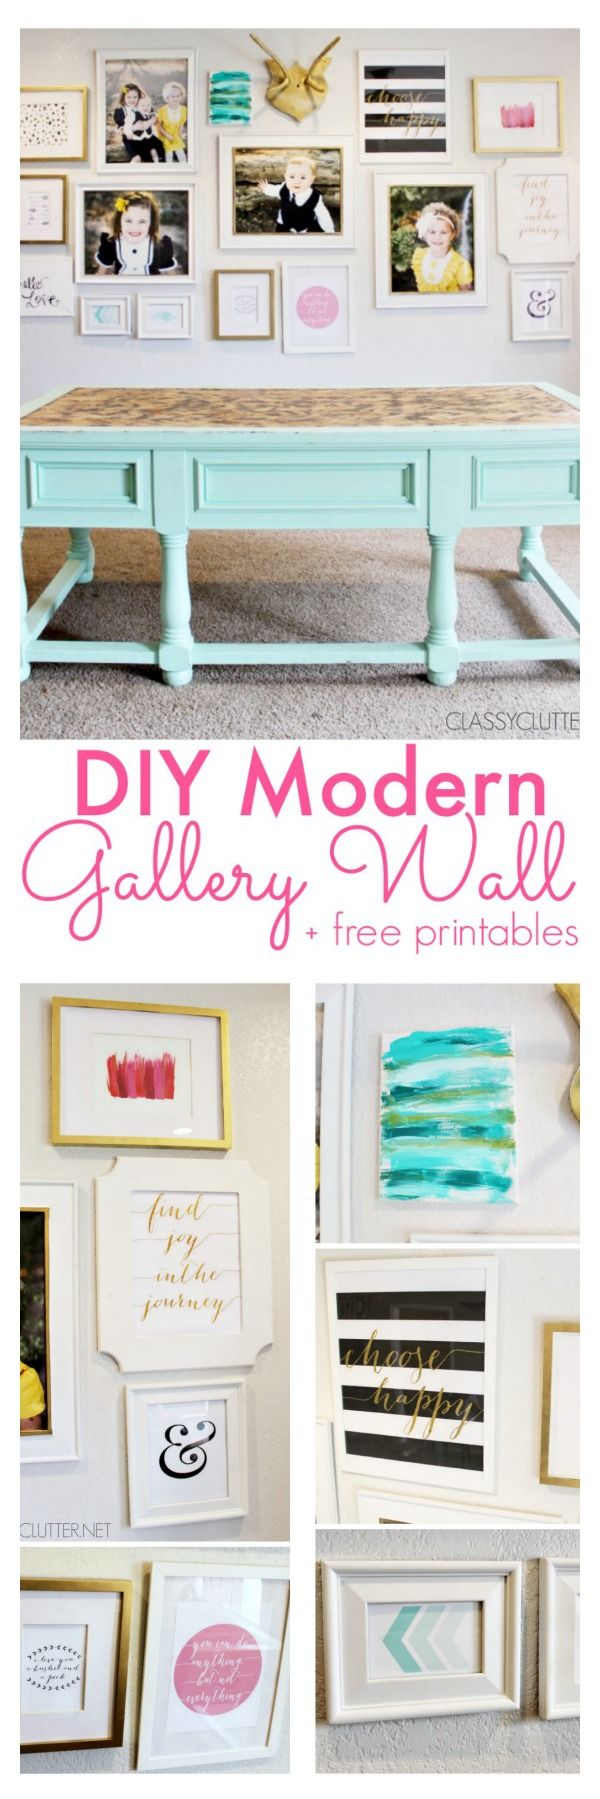 DIY Modern Gallery Wall with free printables!